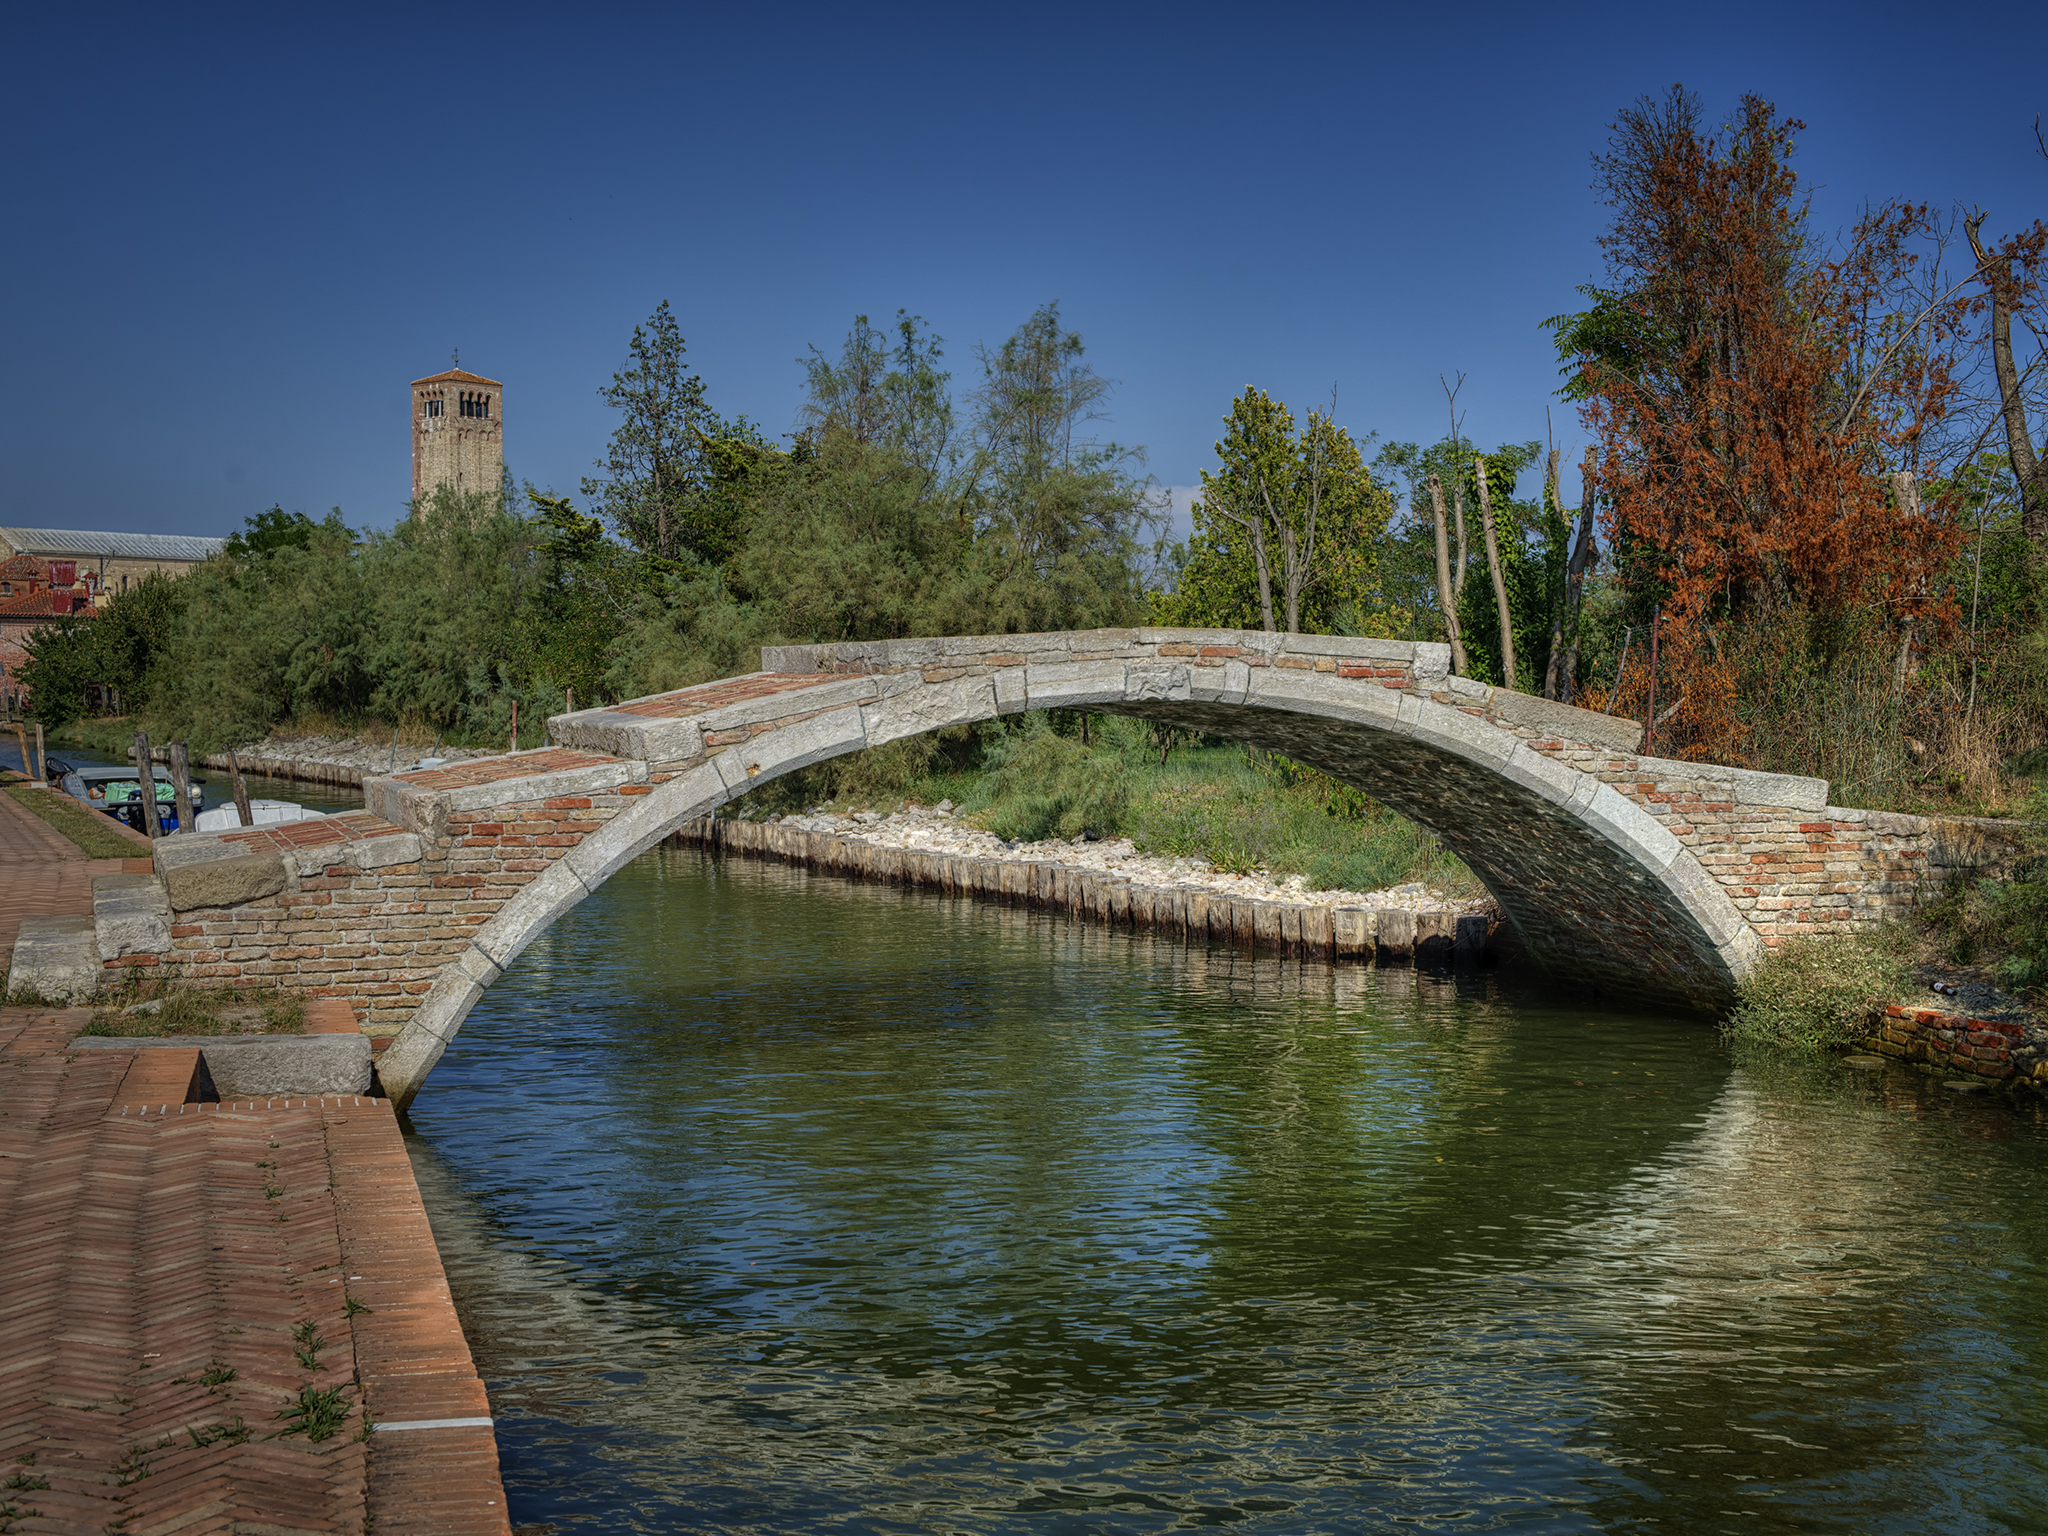 Devil's Bridge in Torcello, Italy